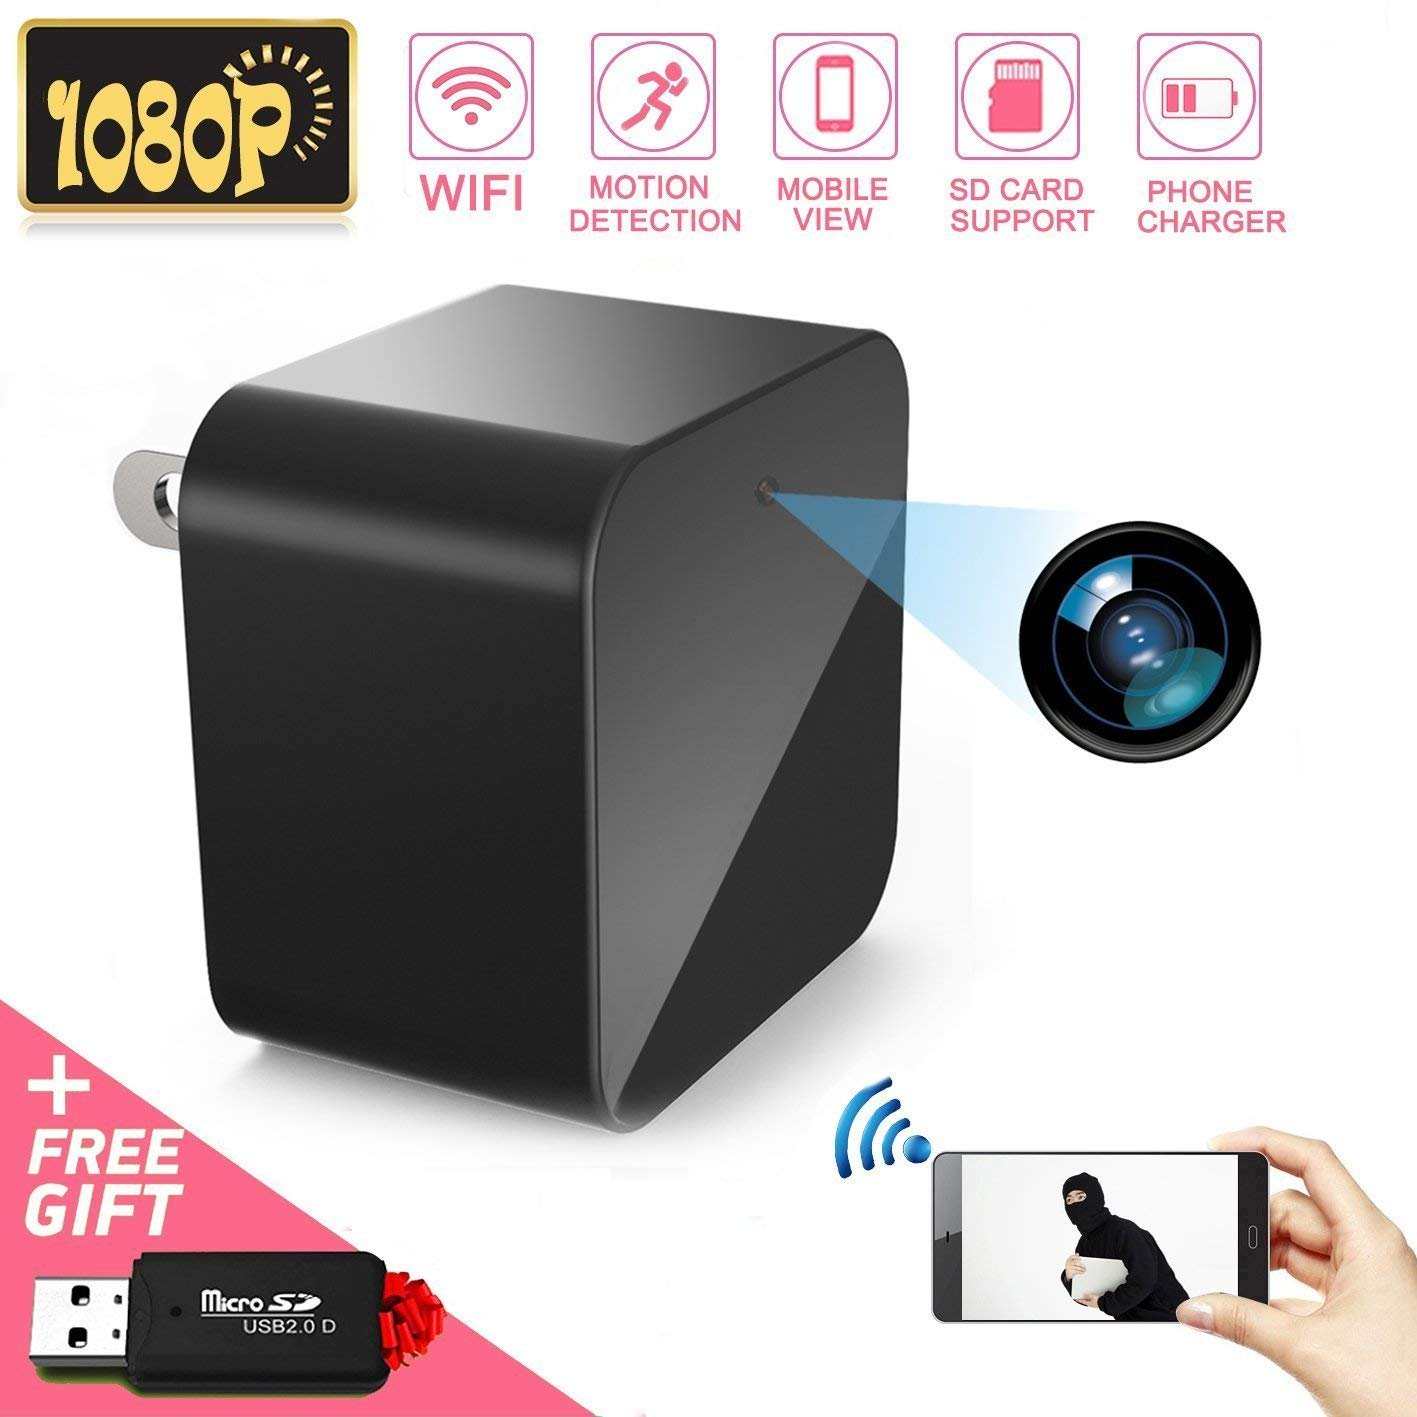 Amazon.com : 1080P WiFi Spy Camera, Hidden Camera, Mini Camera, Nanny Camera with Motion Detection Loop Recording for Home and Office Security Surveillance ...